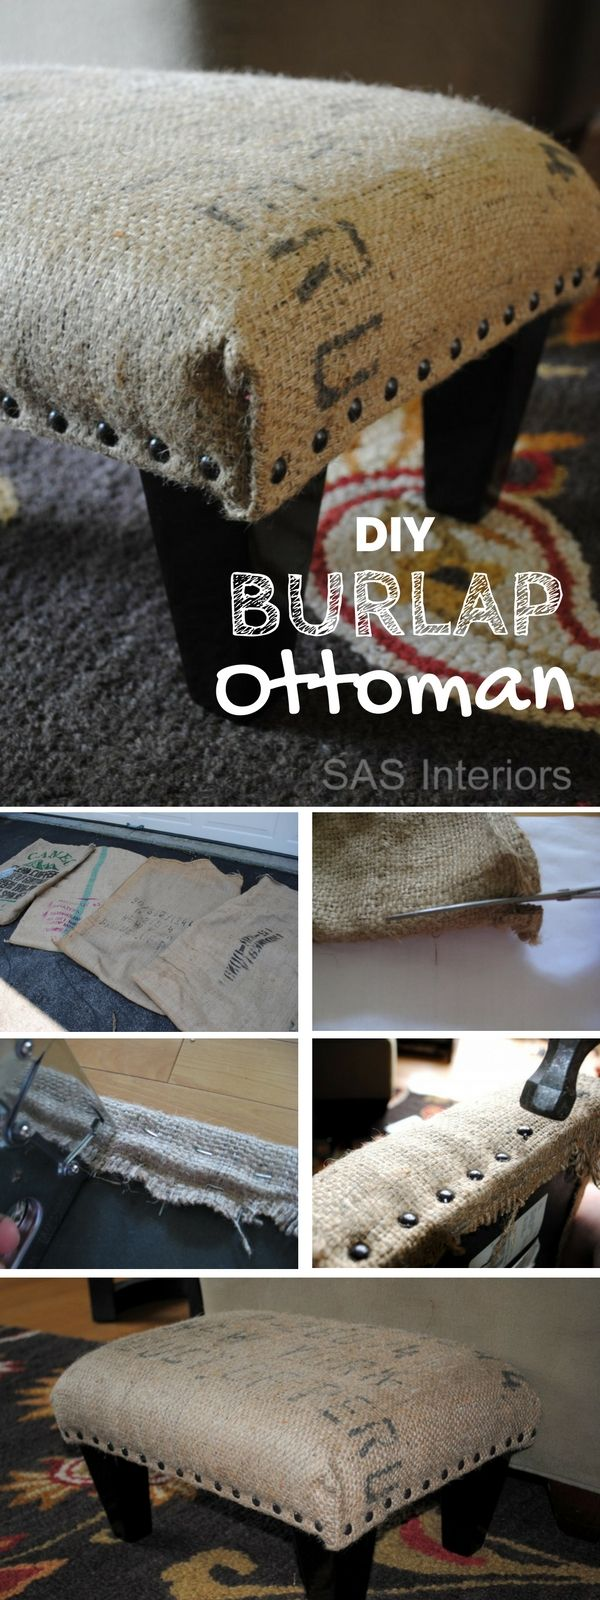 Check out this easy idea on how to make a #DIY ottoman using burlap coffee sack for living room #homedecor #rustic #budget #project @istandarddesign